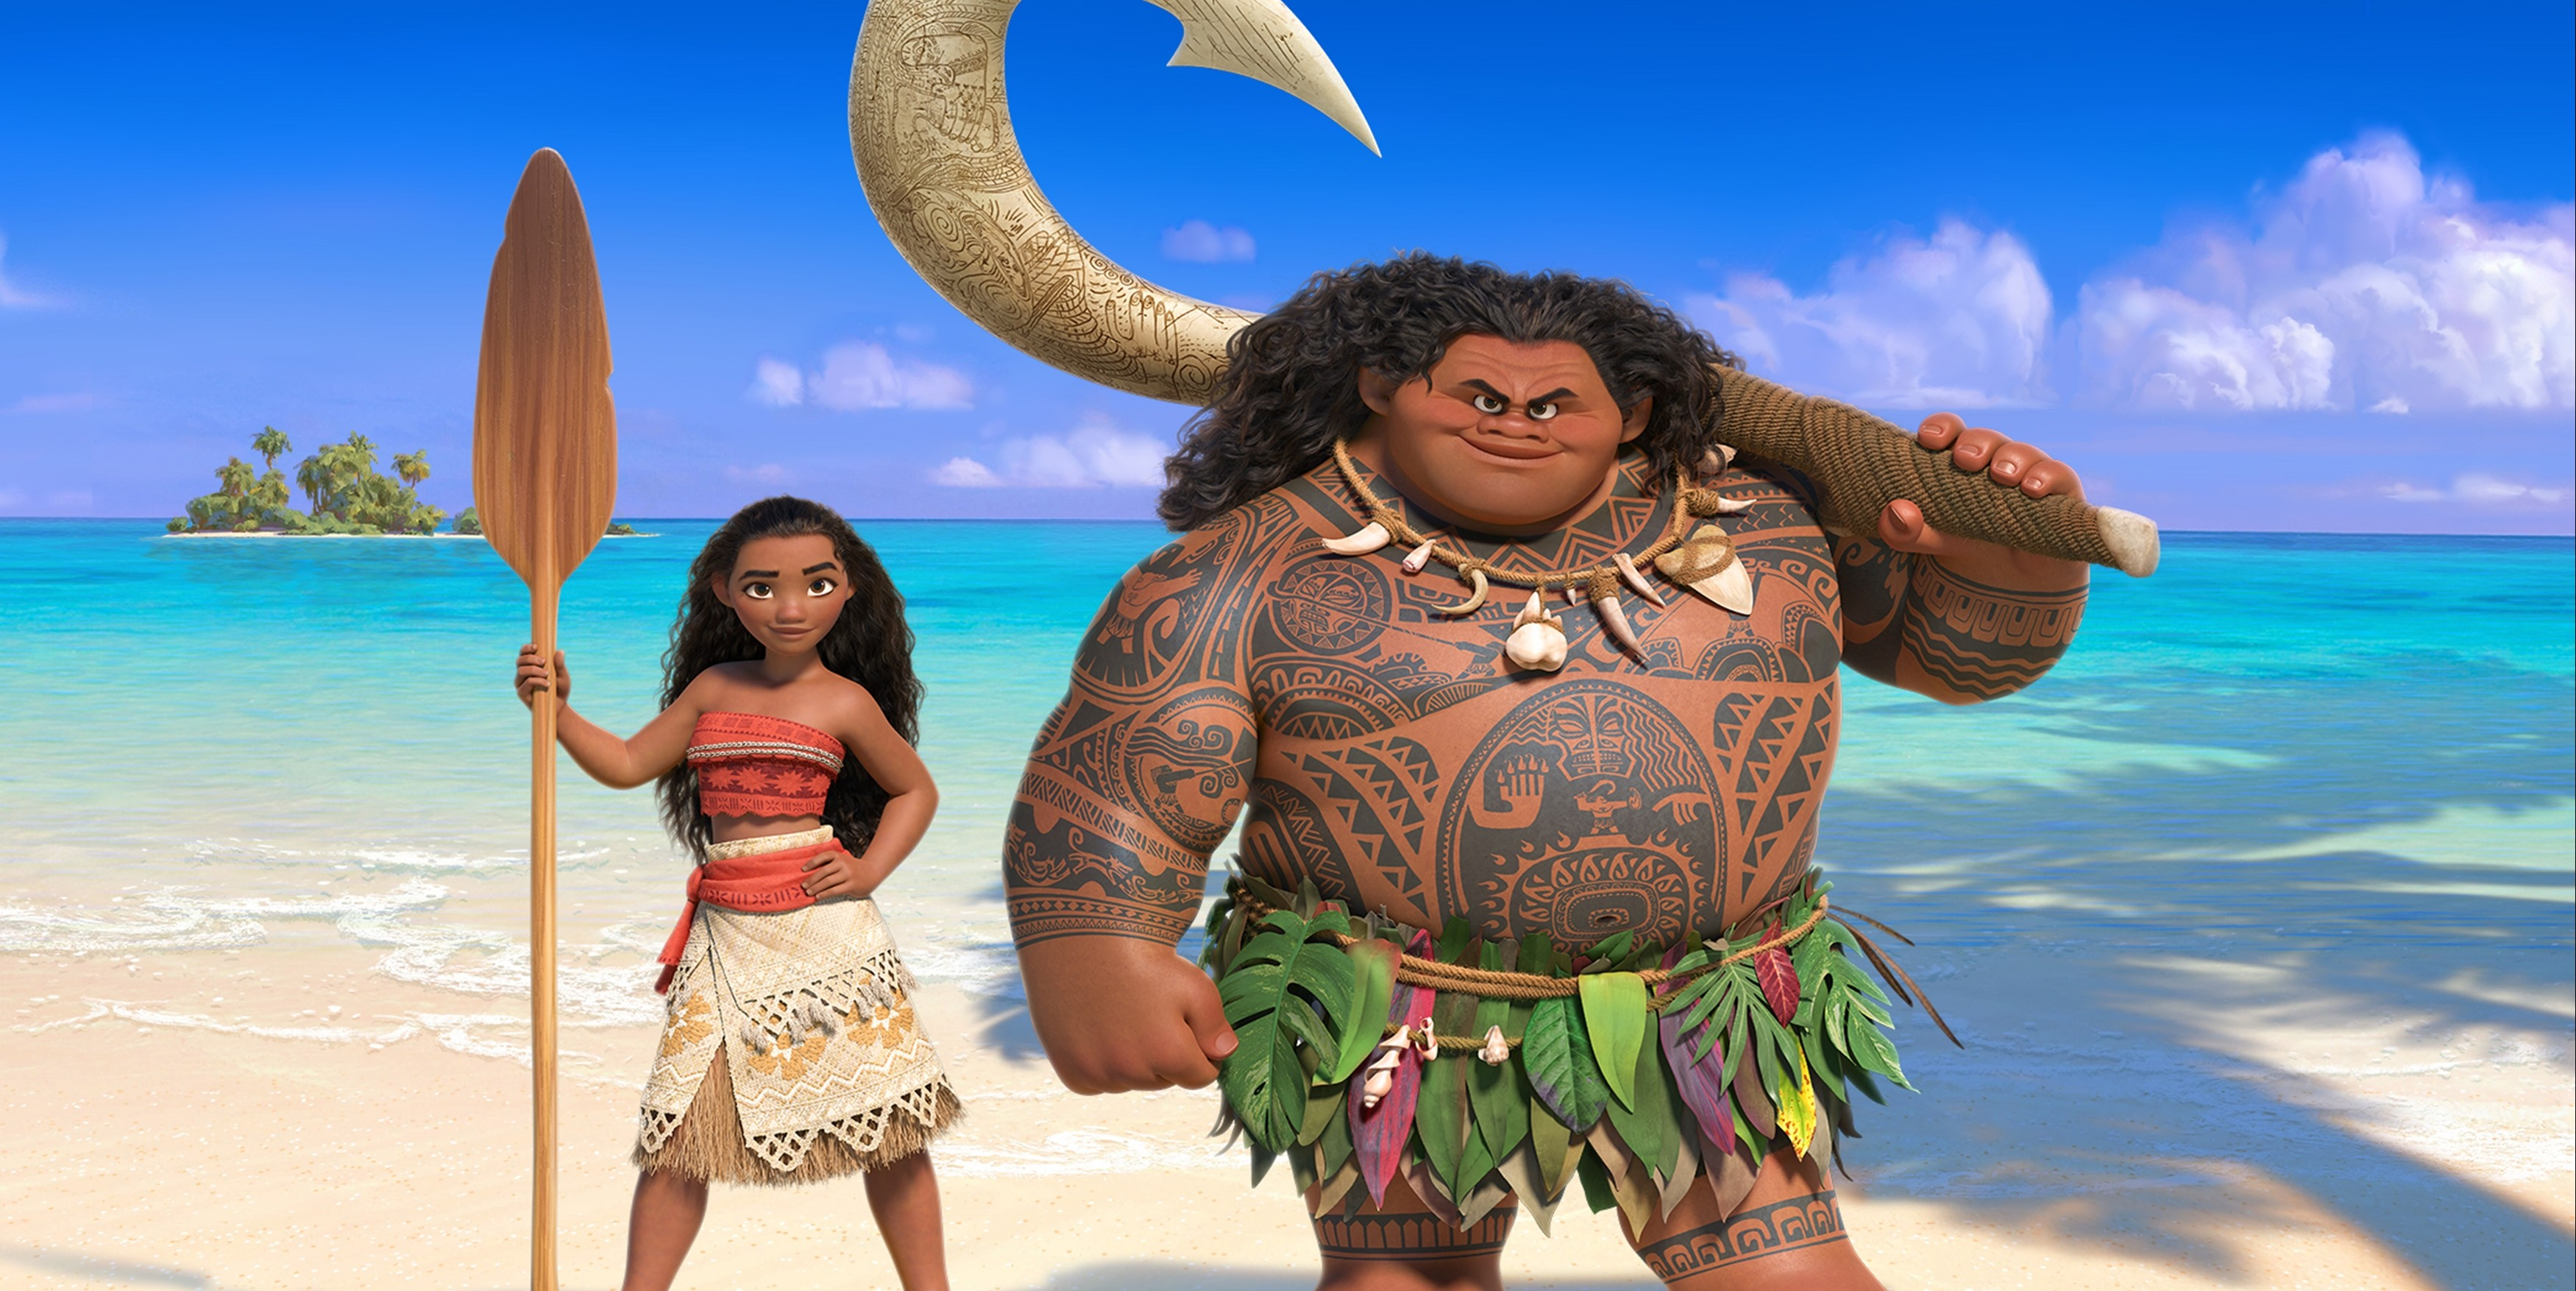 Wallpaper moana maui best animation movies of 2016 for Home wallpaper 2016